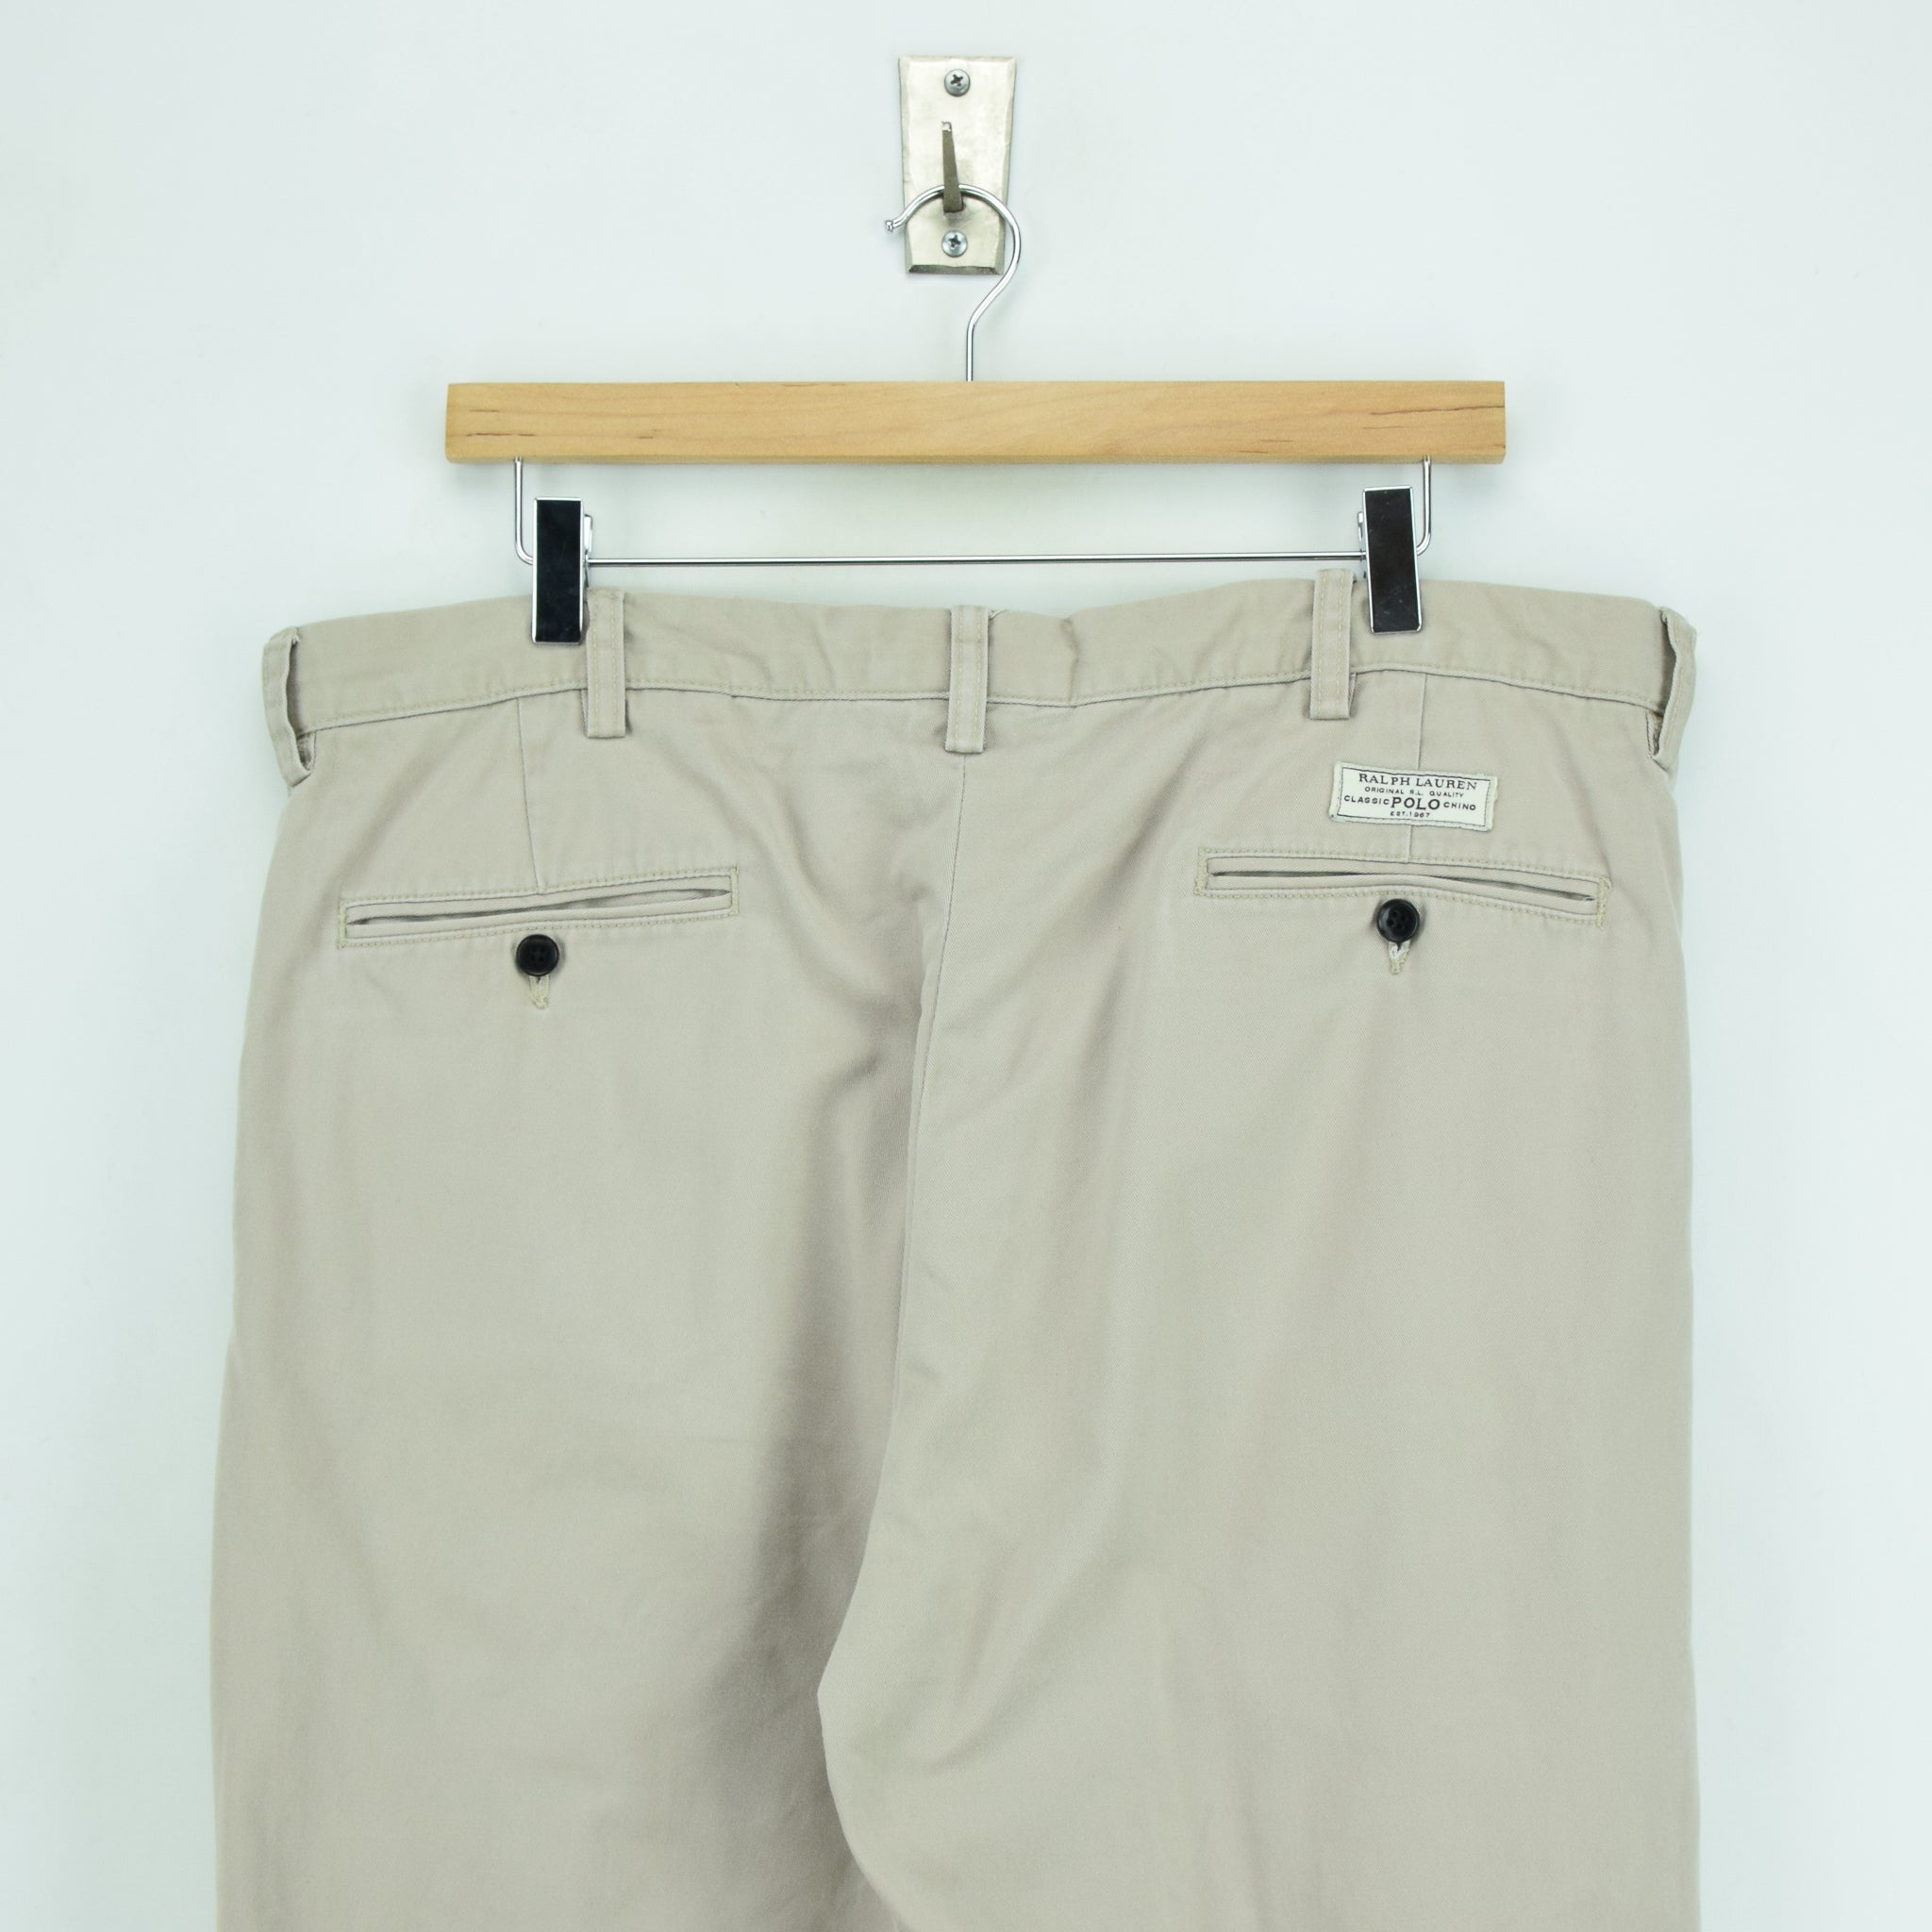 Ralph Lauren Polo Prospect Pant Chinos Stone Pleated Front Trousers 36 W 34 L back waist